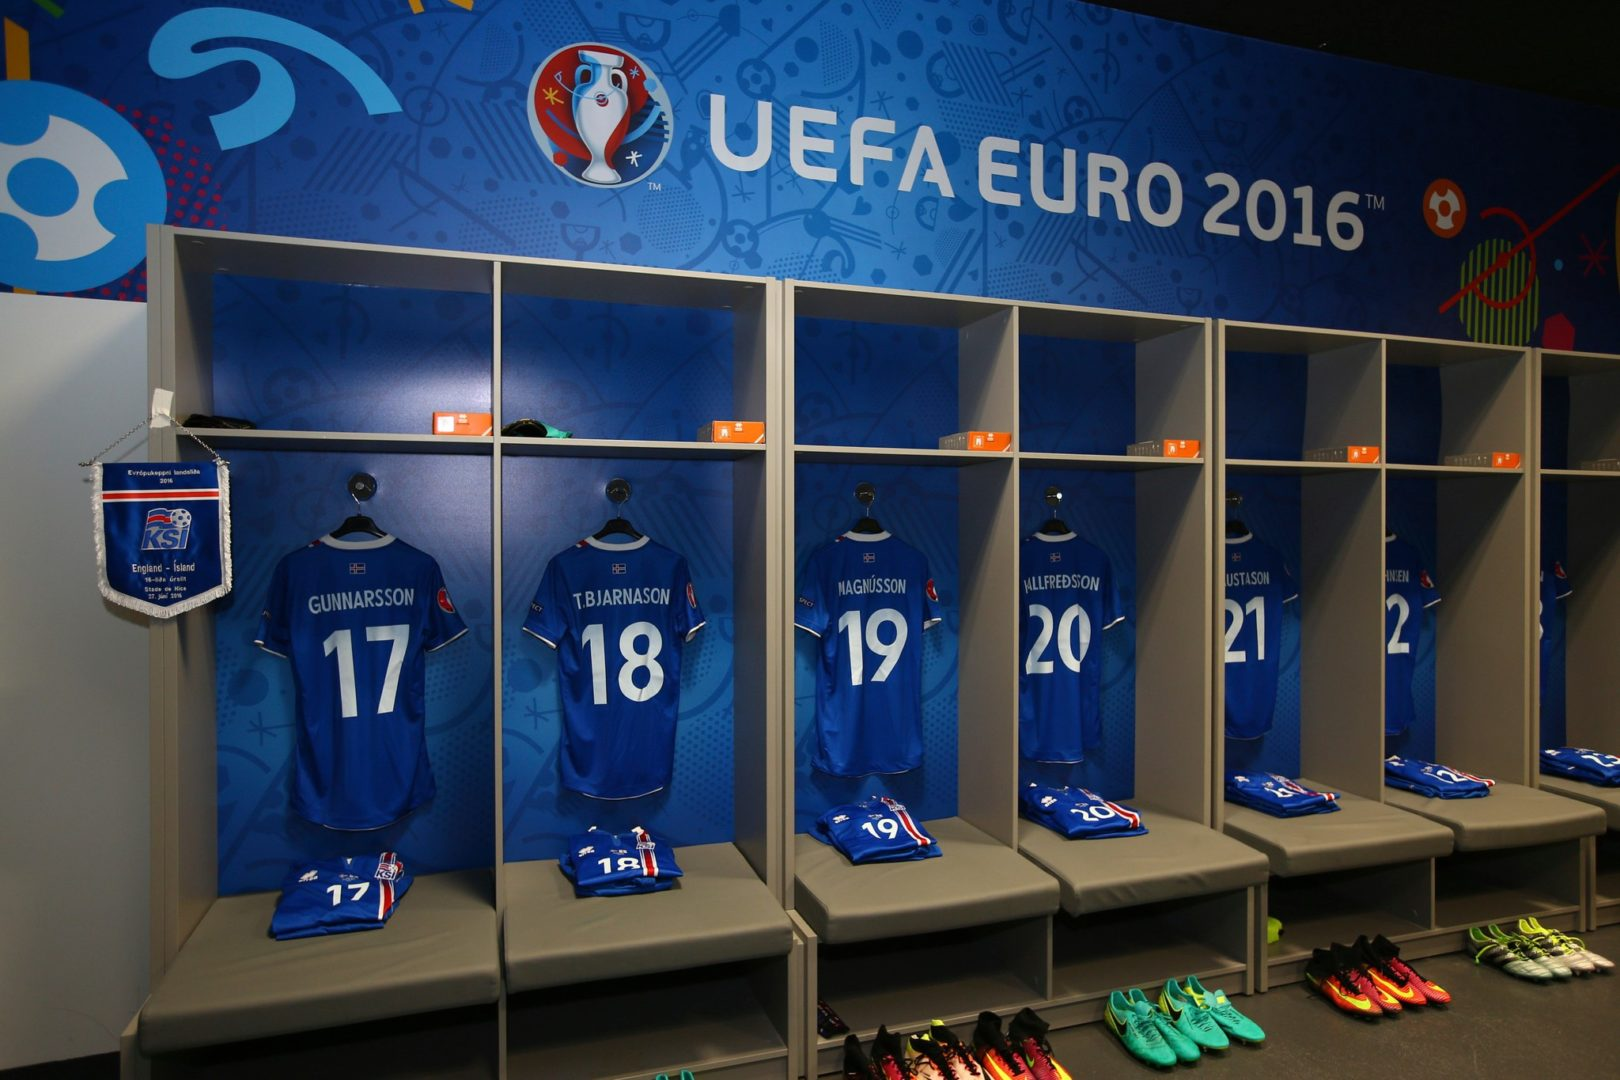 Iceland's Rise as a Football Nation Euro 2016 - Historical Event